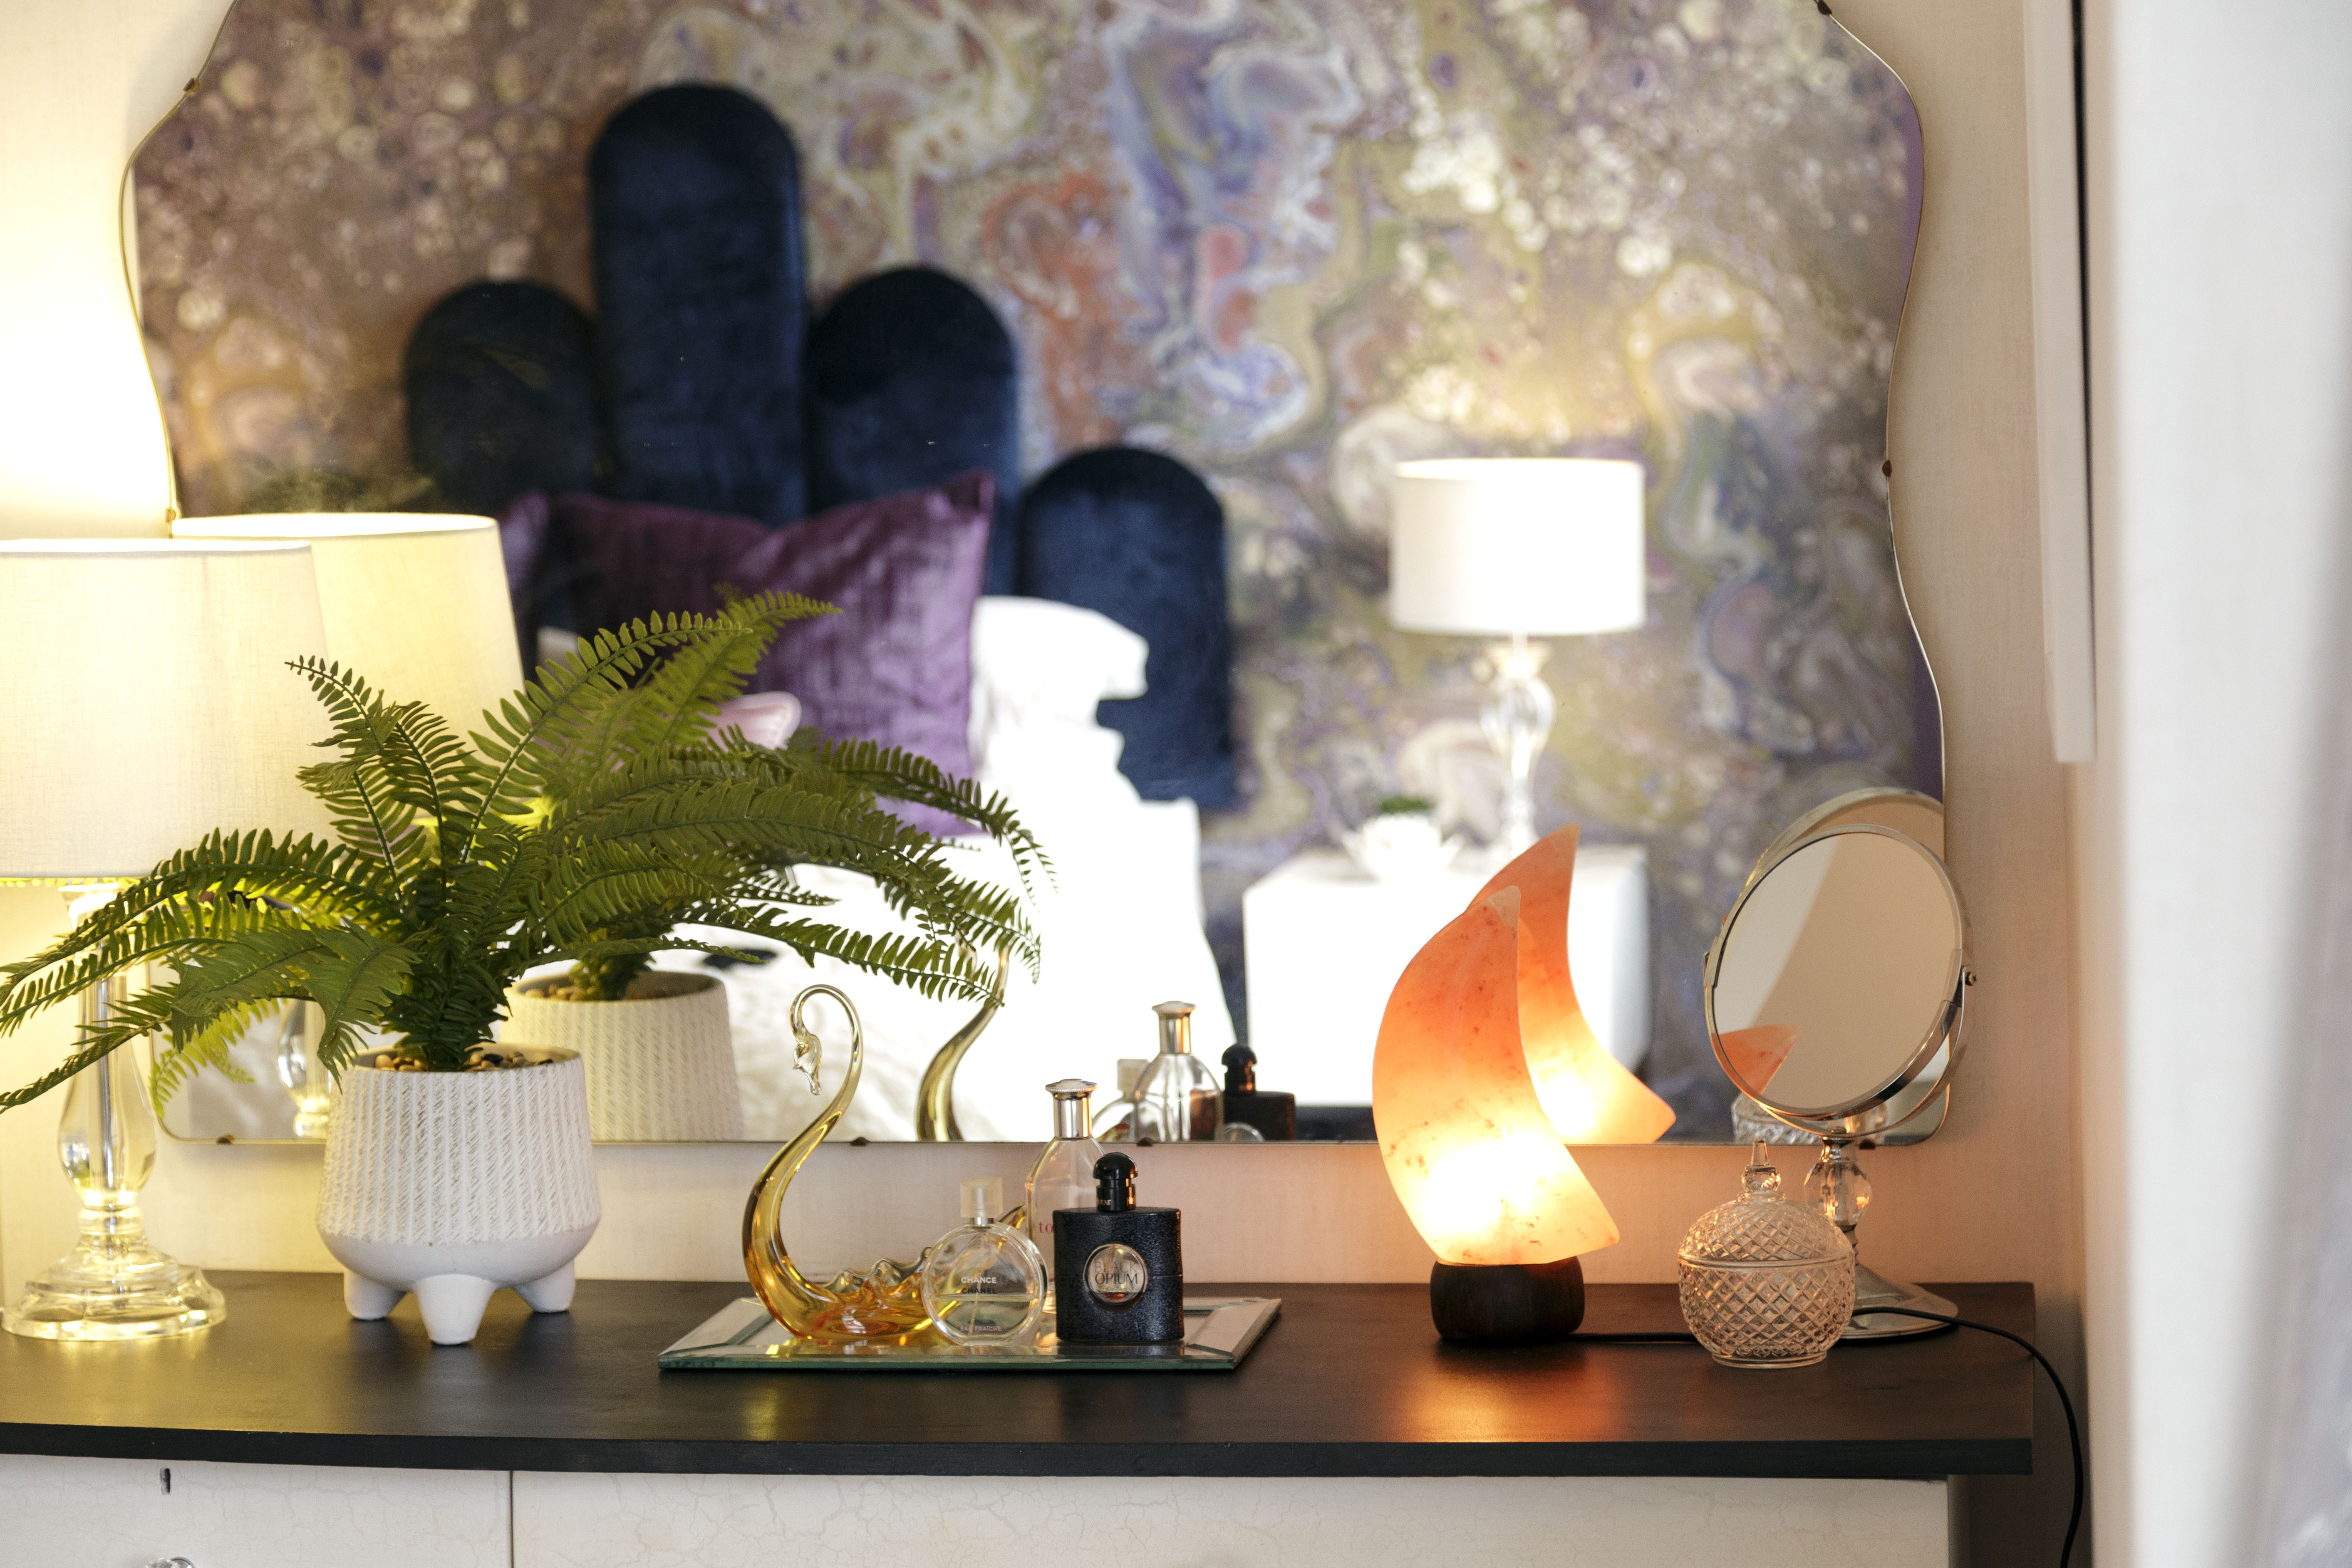 dressing table interior decor with mood salt lamp, plant and purfume disp;ay